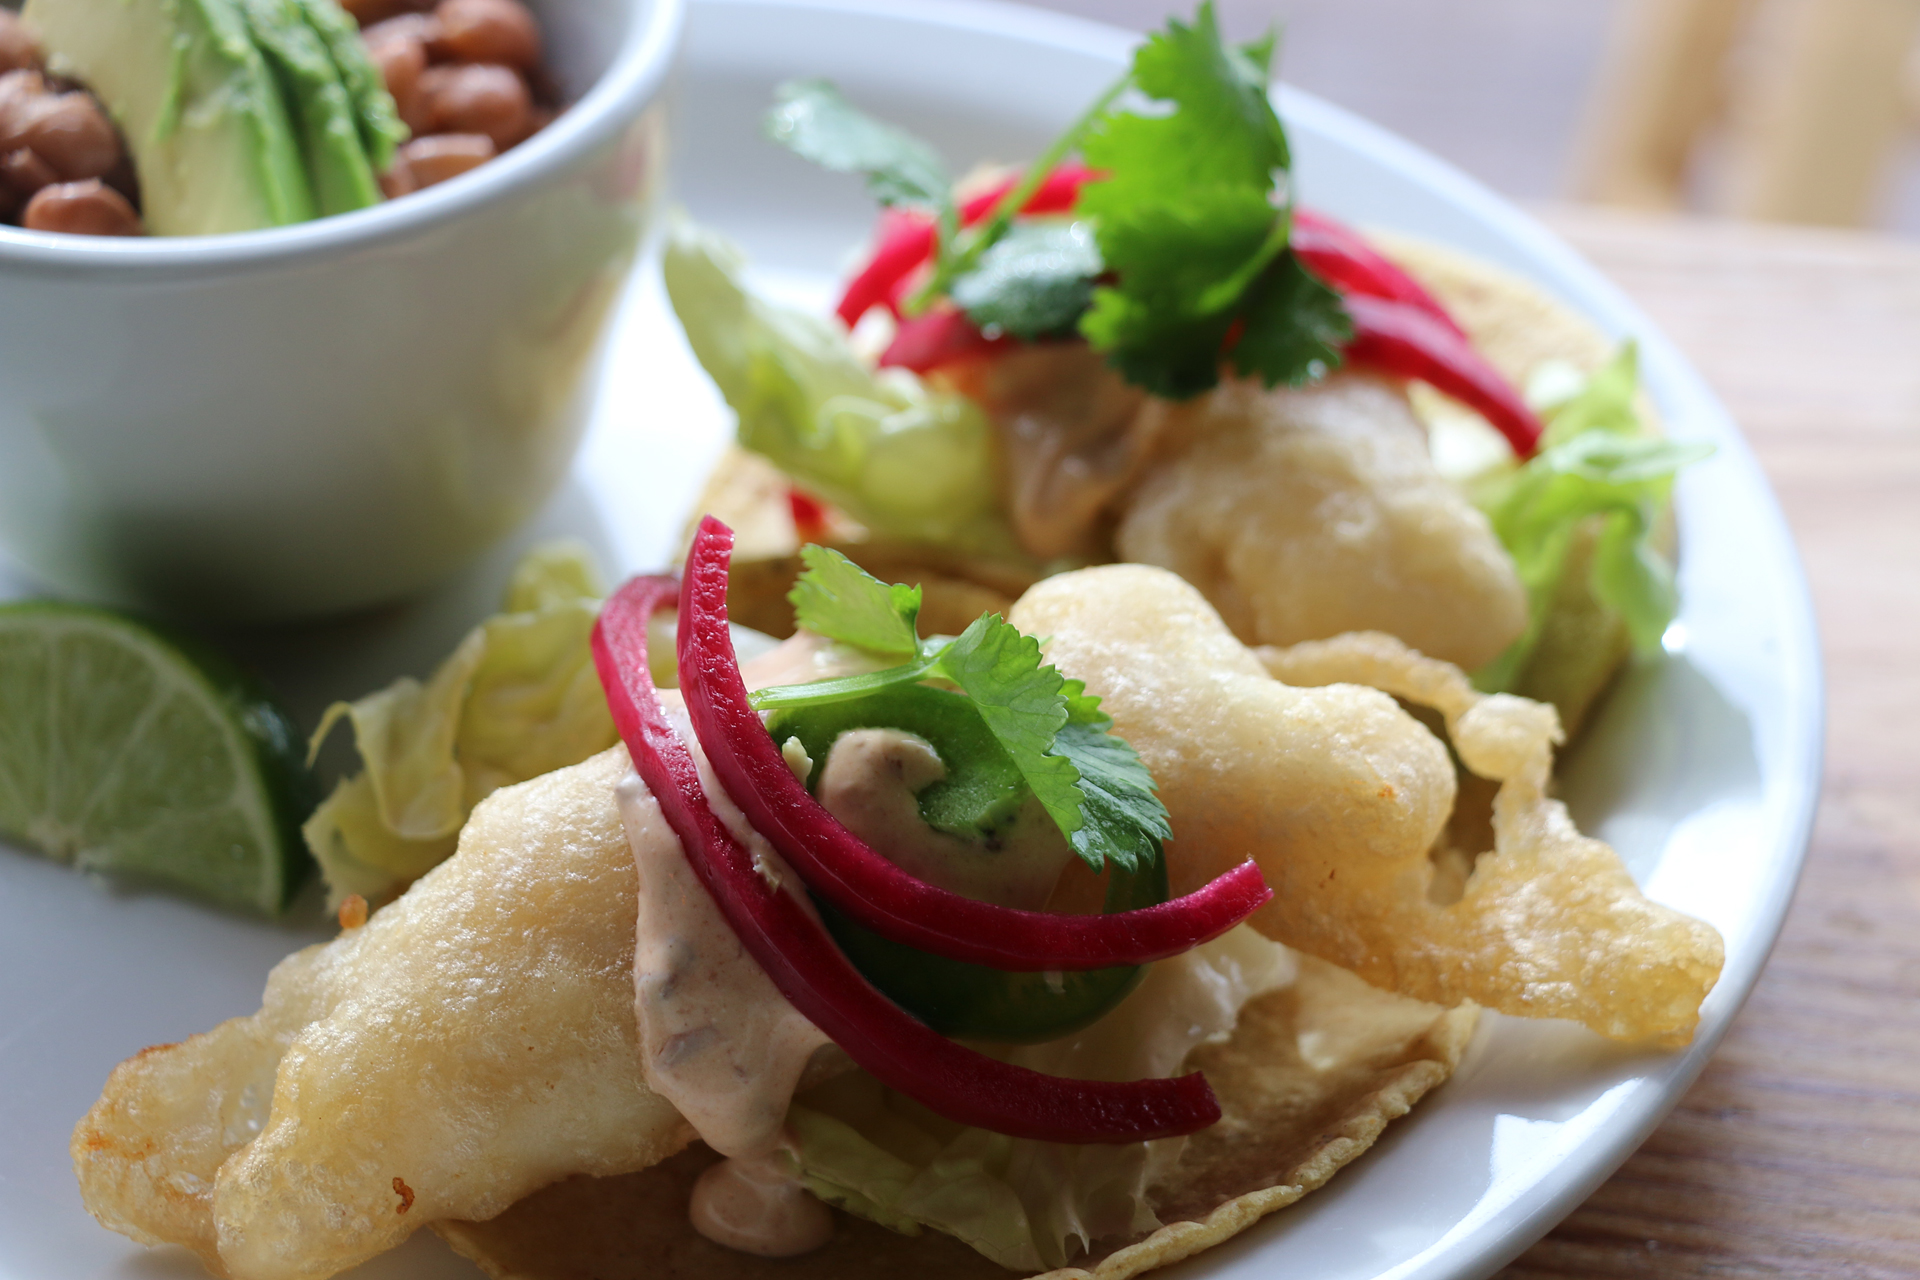 The East Bay's best fried fish taco at Cosecha in Old Oakland